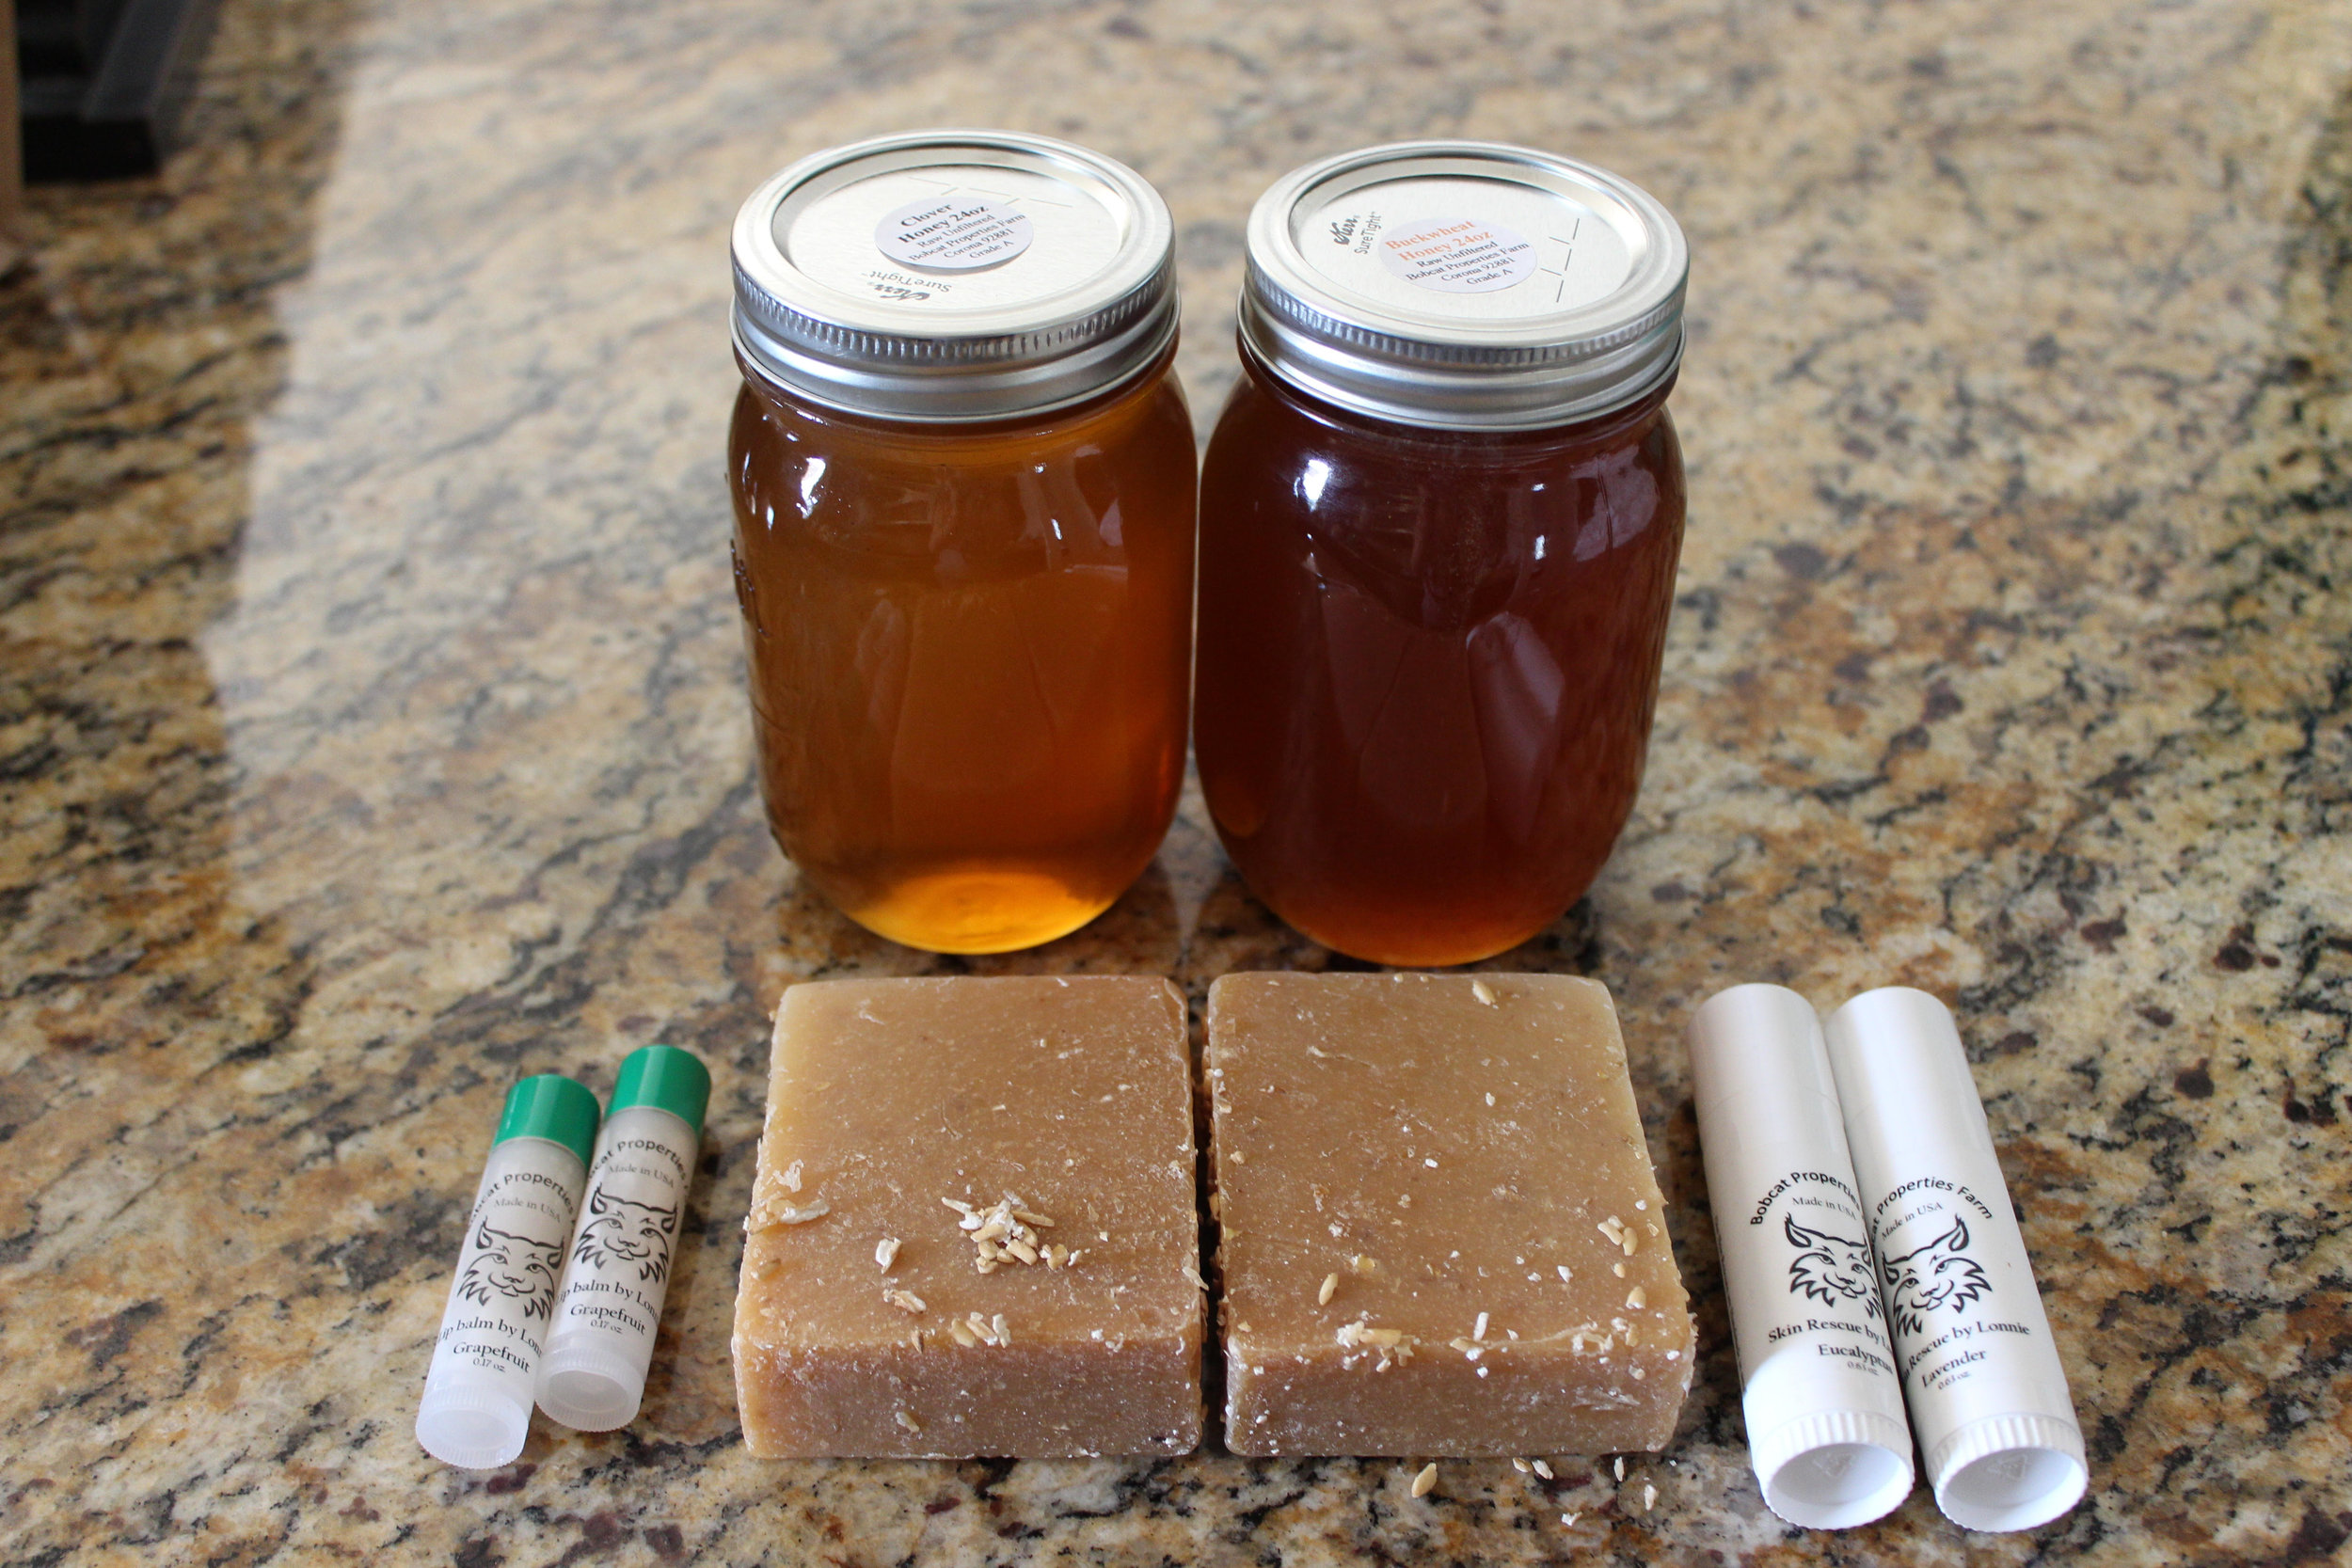 Not only do they make honey, but they also make body care products with honey infused in them